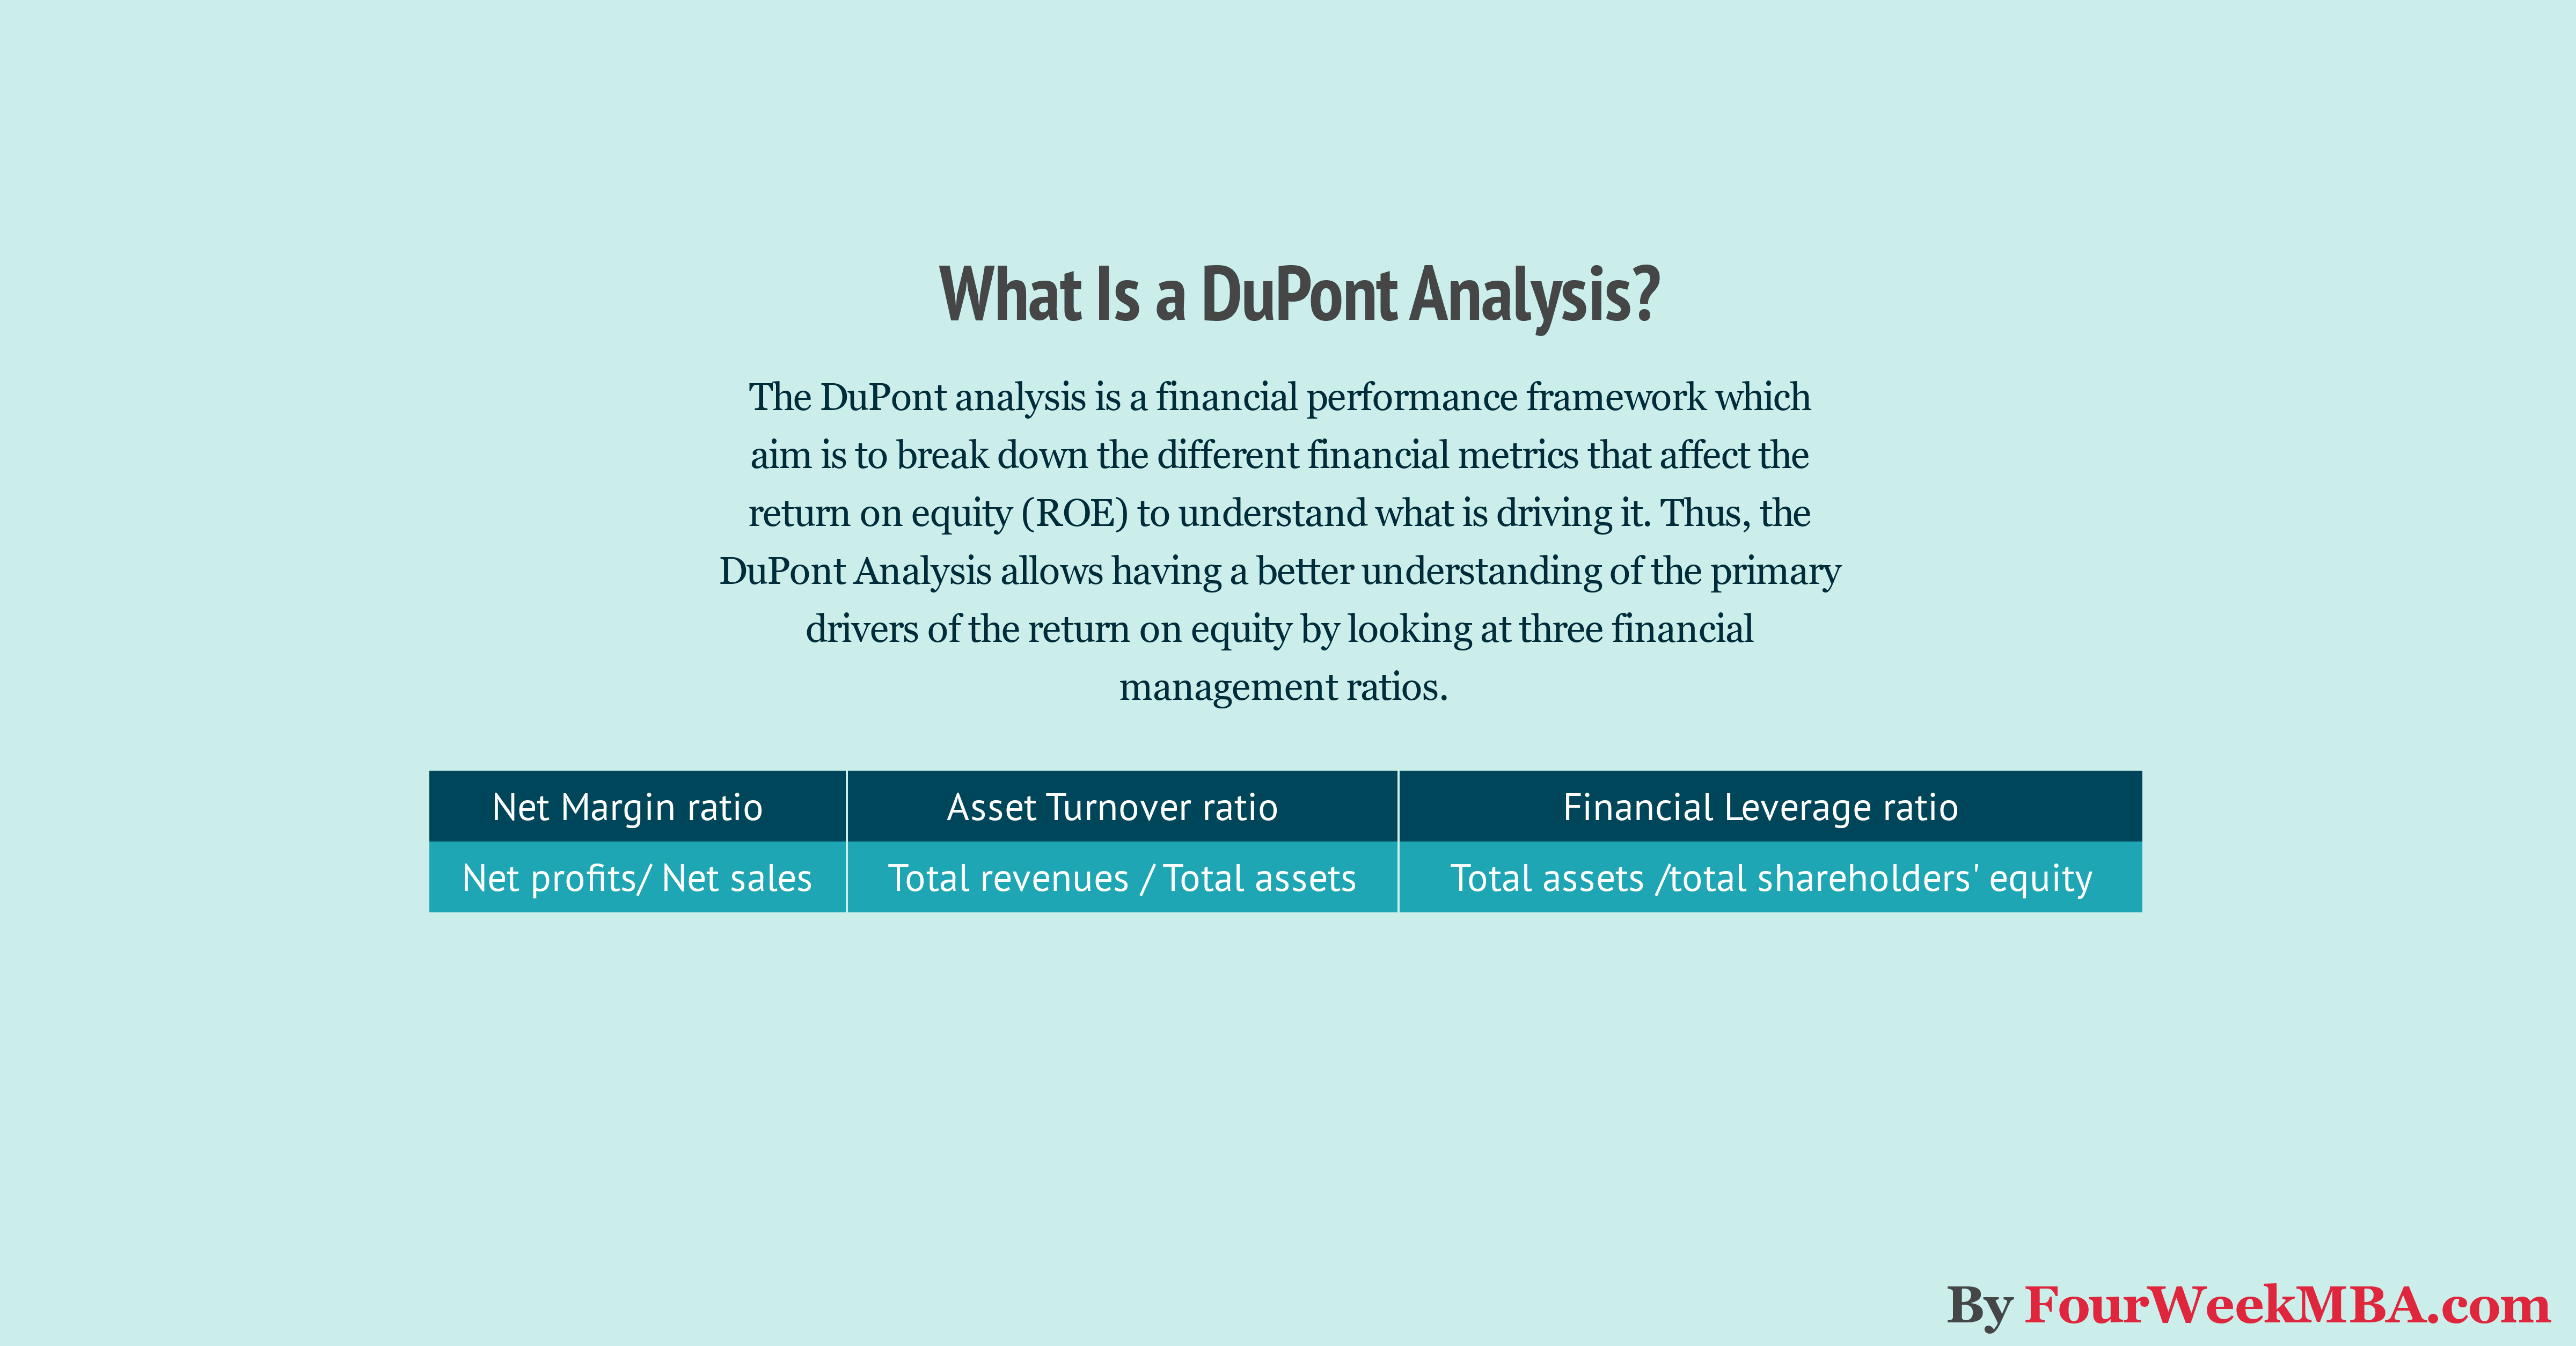 What Is a DuPont Analysis? How to Perform a DuPont Analysis from Scratch